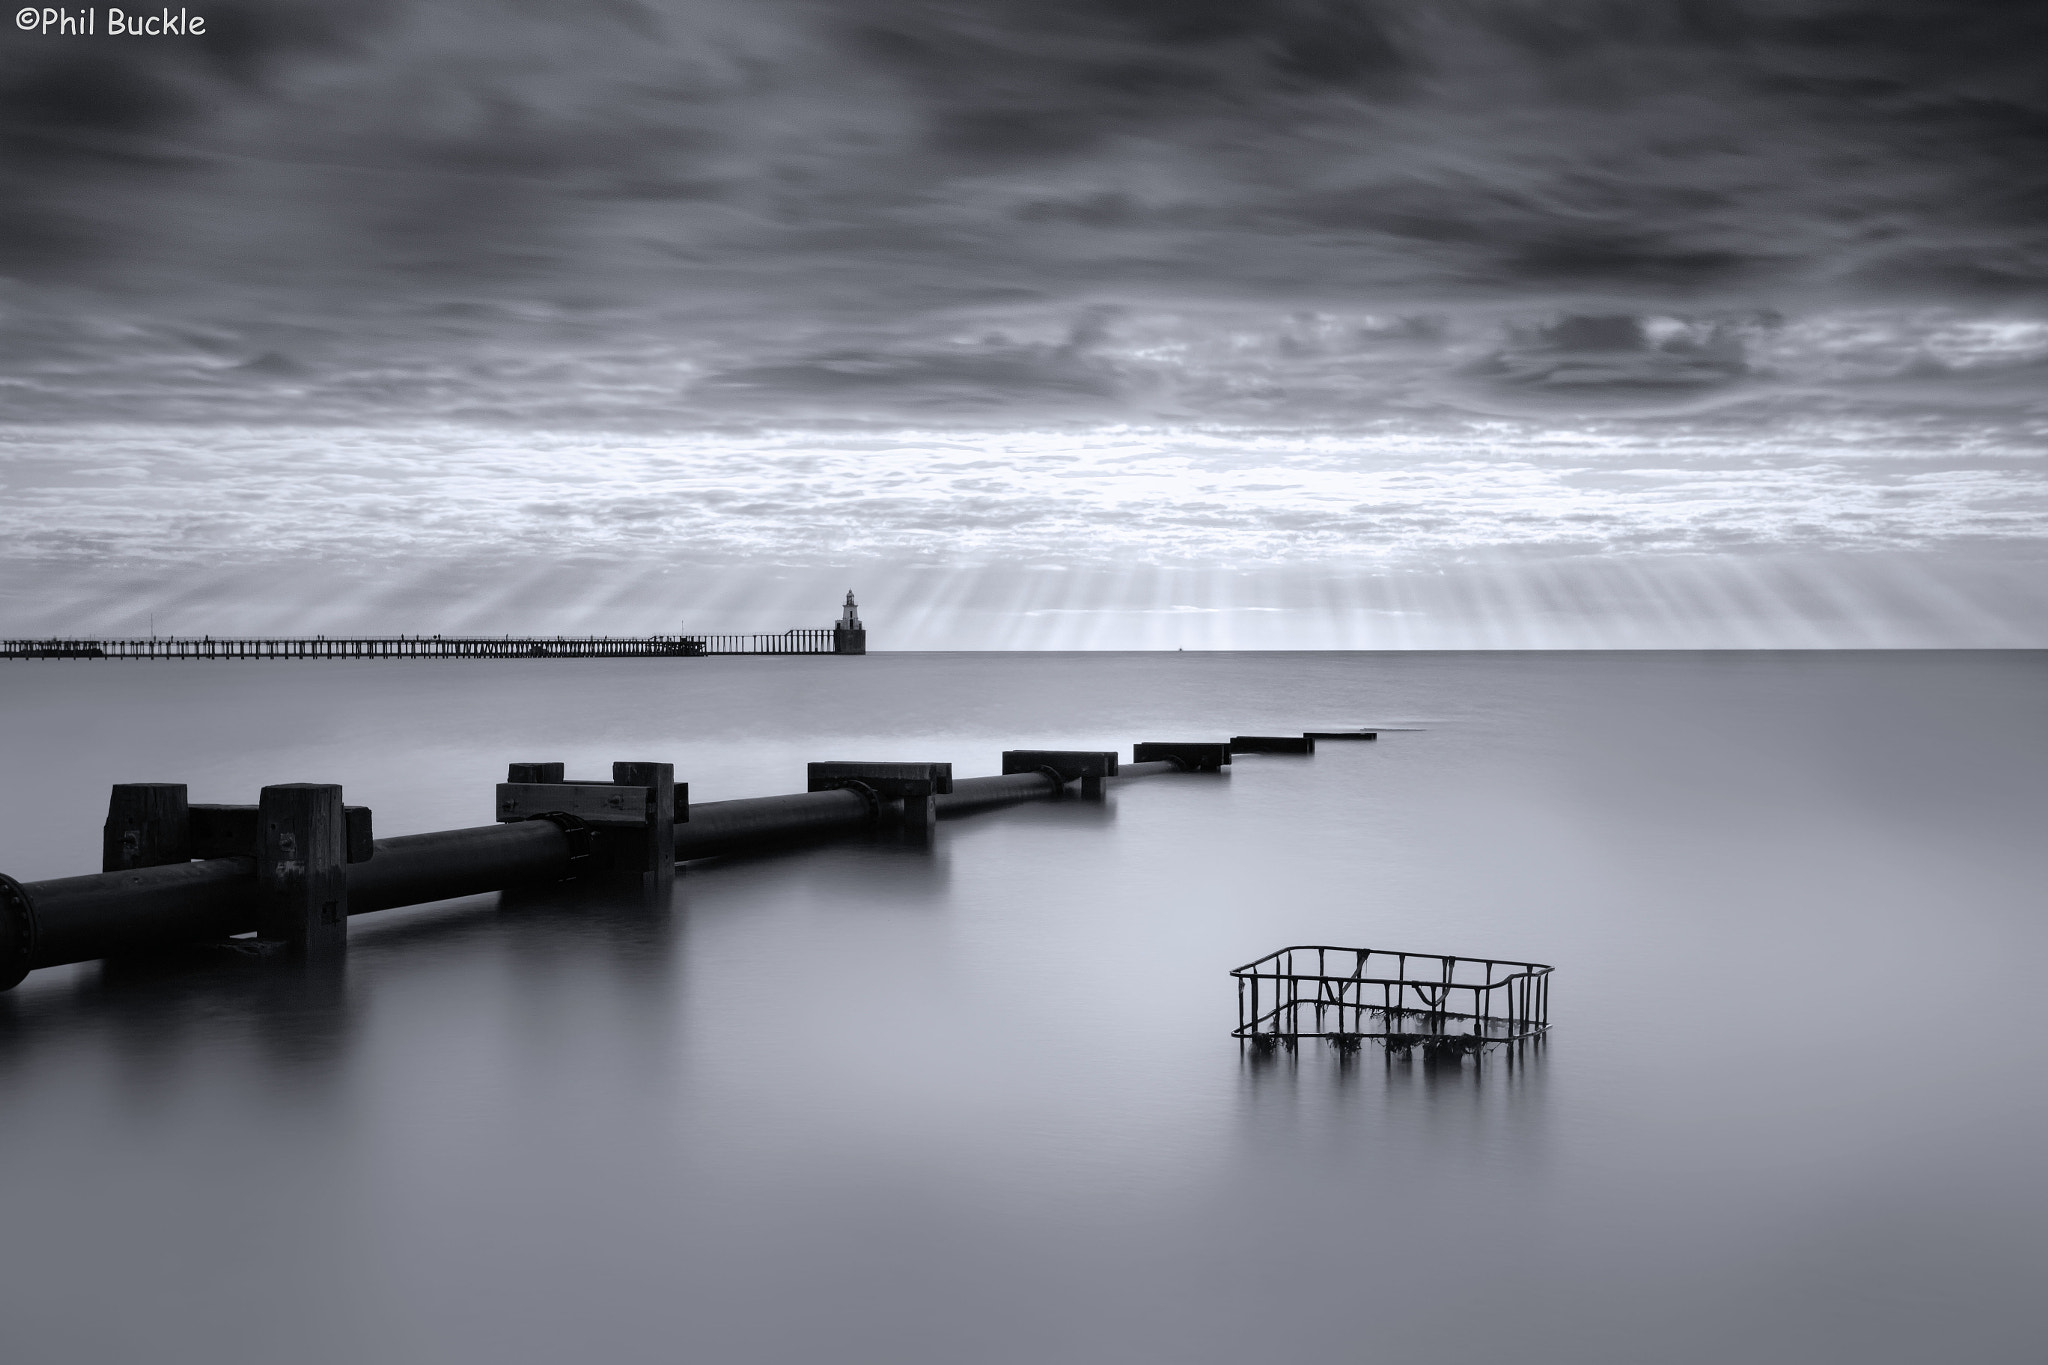 Photograph Blyth Pipe by Phil Buckle on 500px